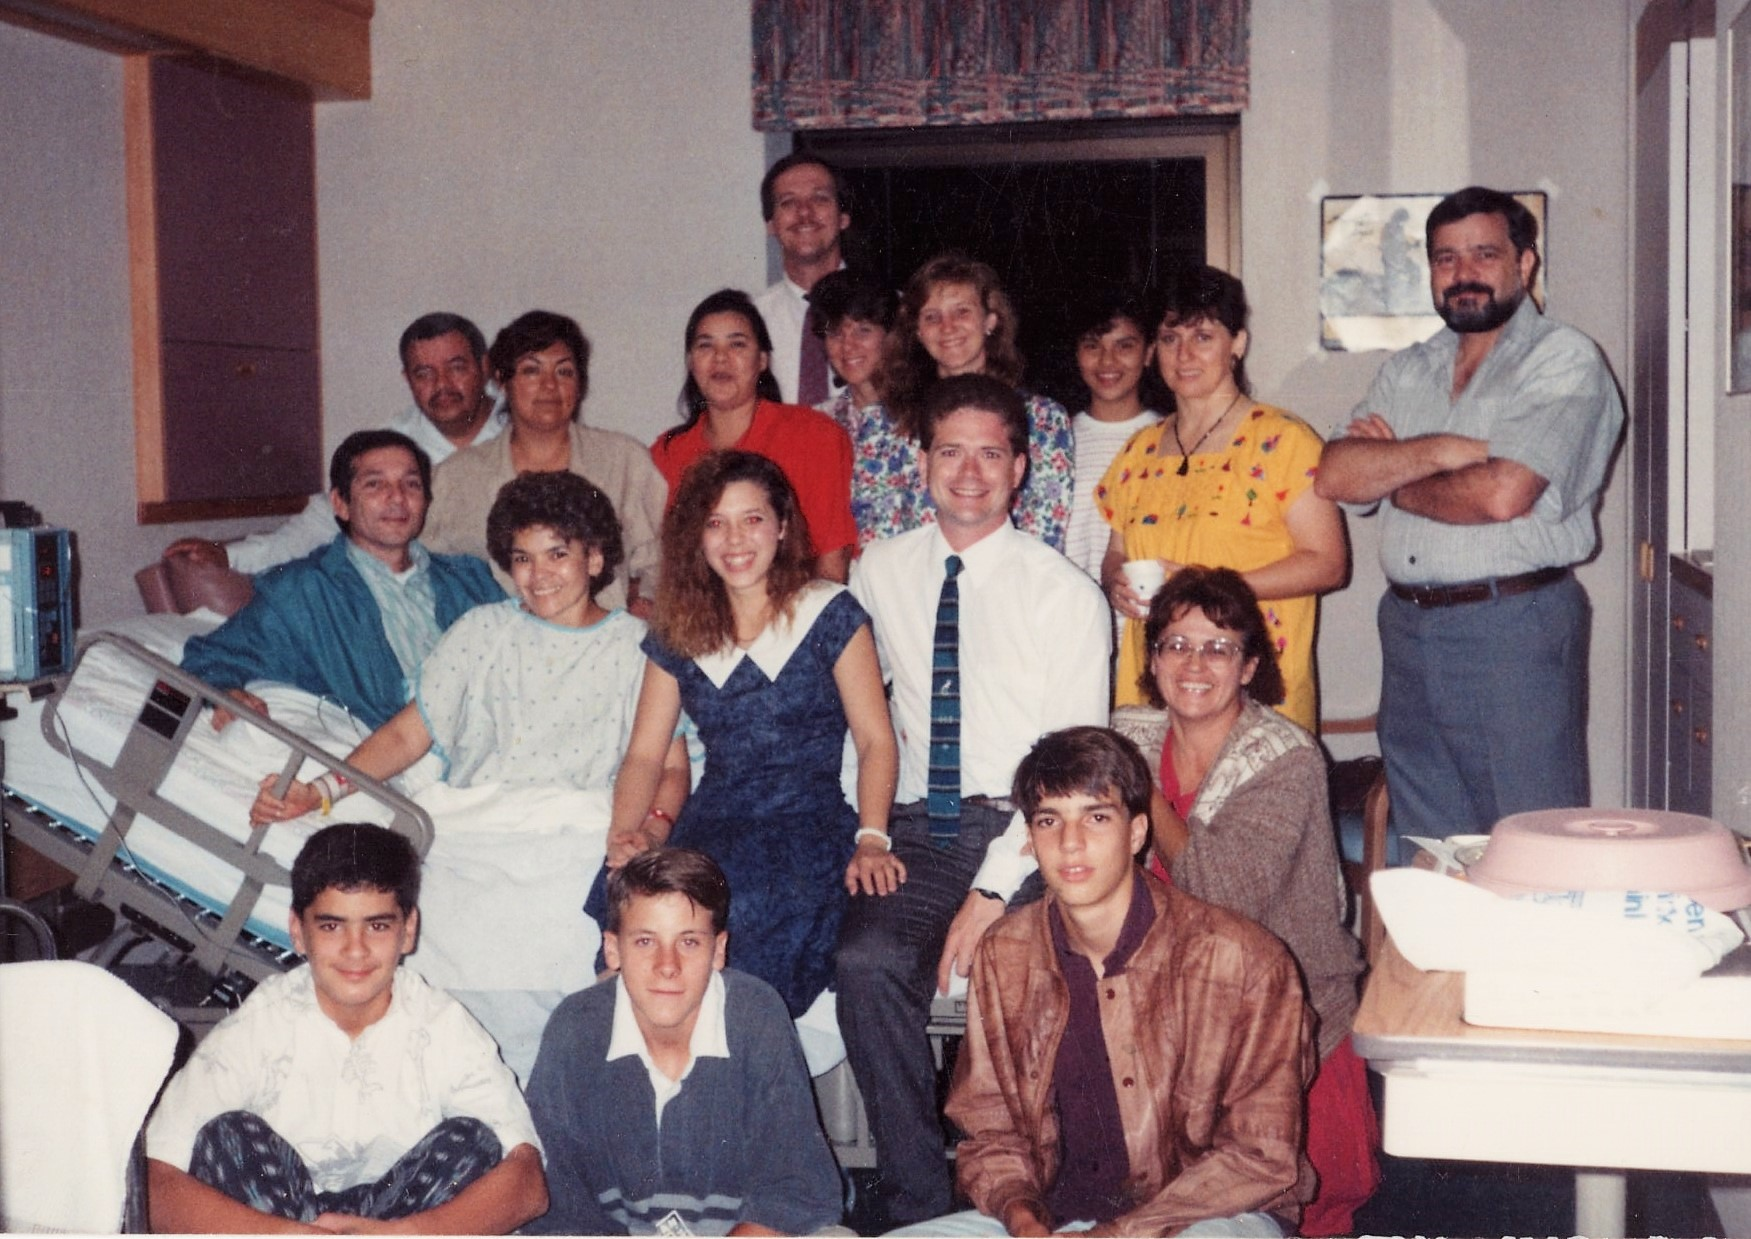 Missionaires and friends gather the night before Raquel is to return to PR June 1991